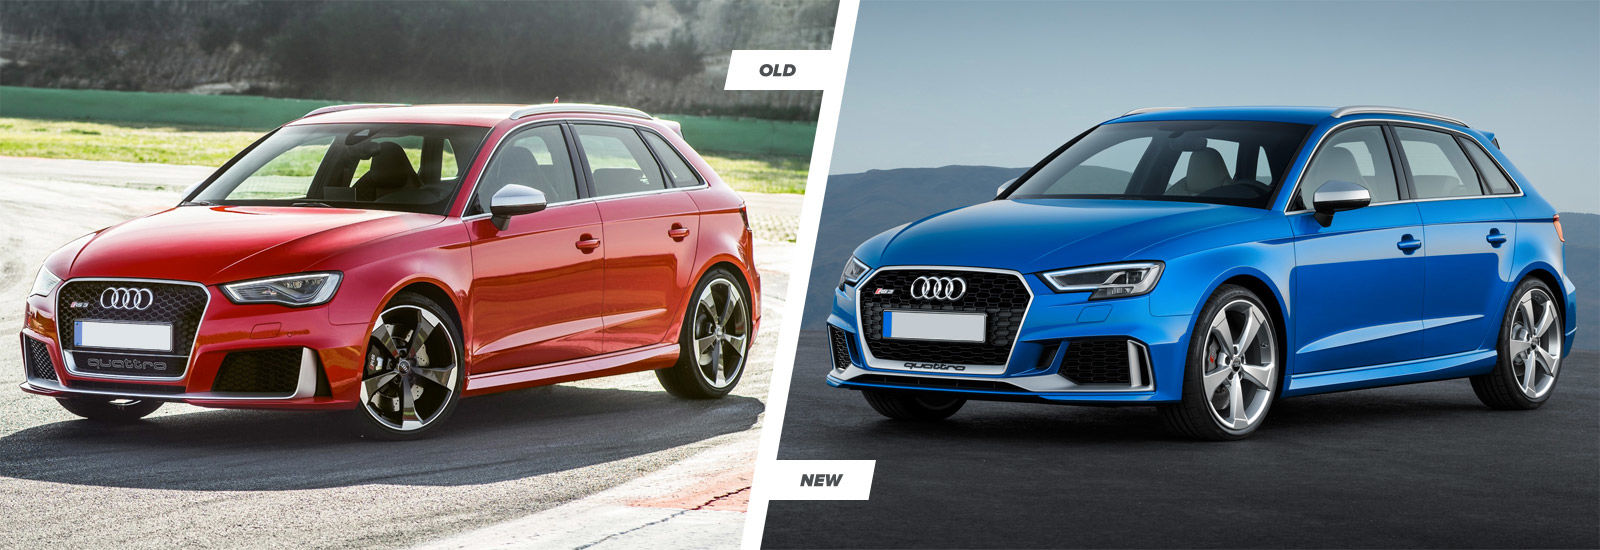 Audi RS3 Sportback facelift – complete guide | carwow